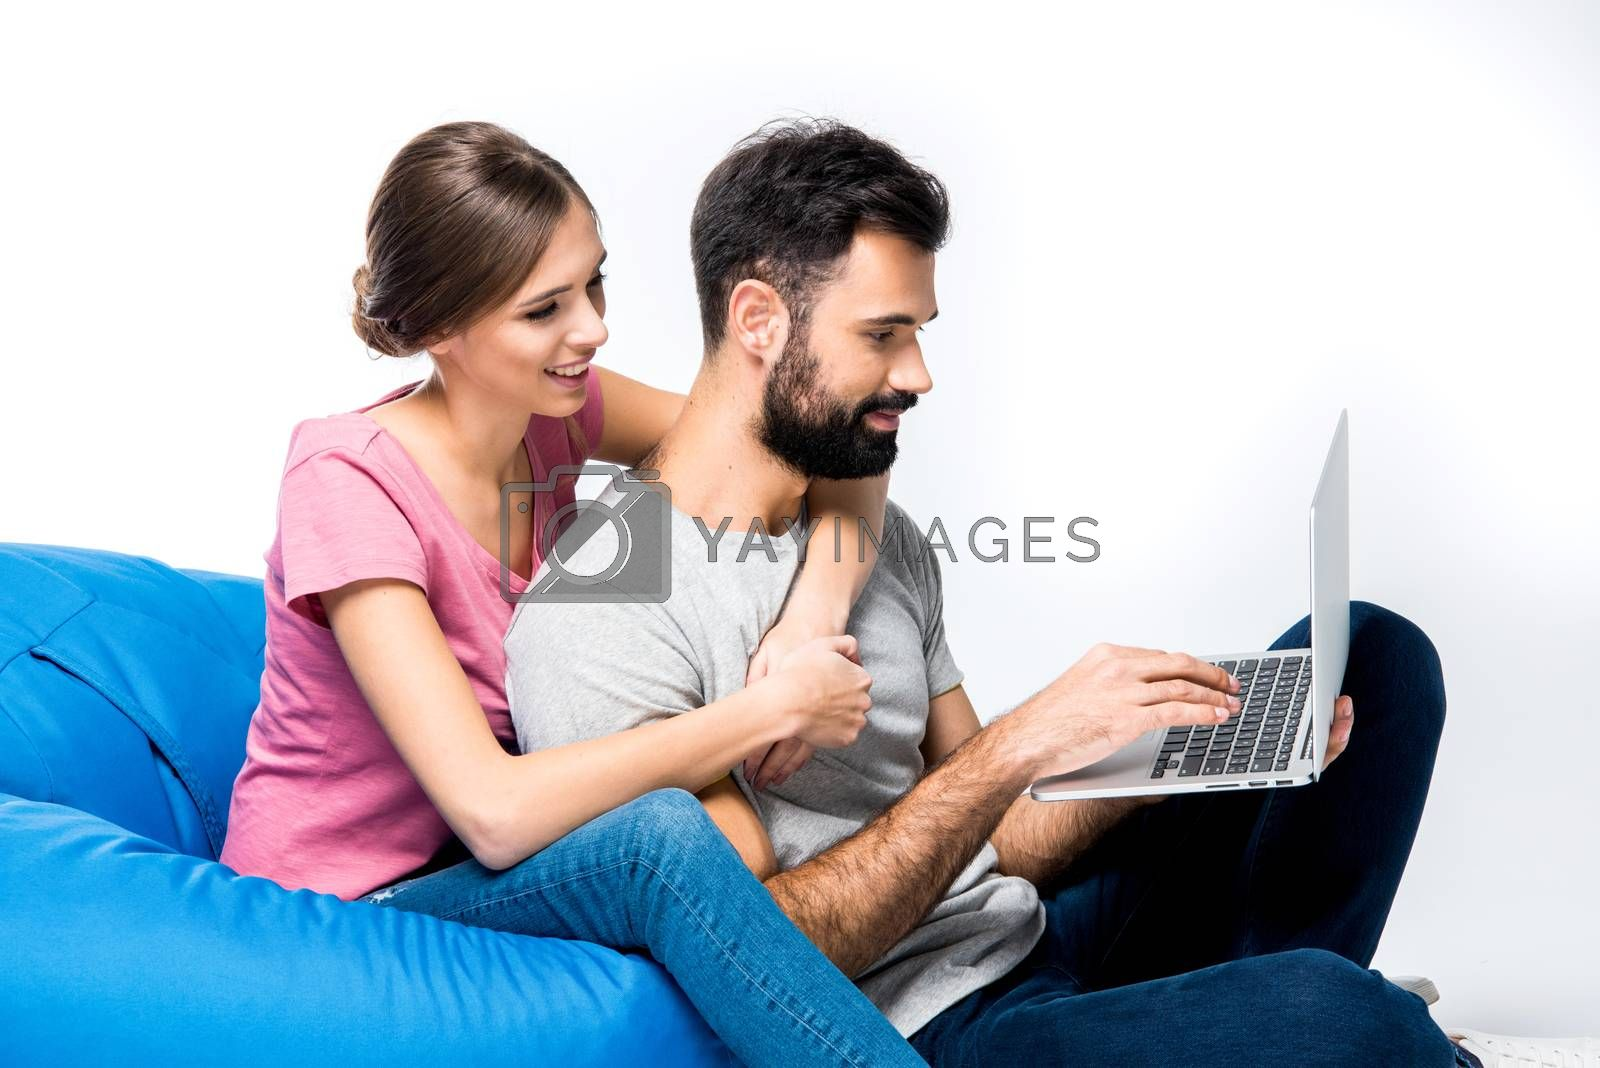 Young couple sitting on big blue pouf and using laptop, on white